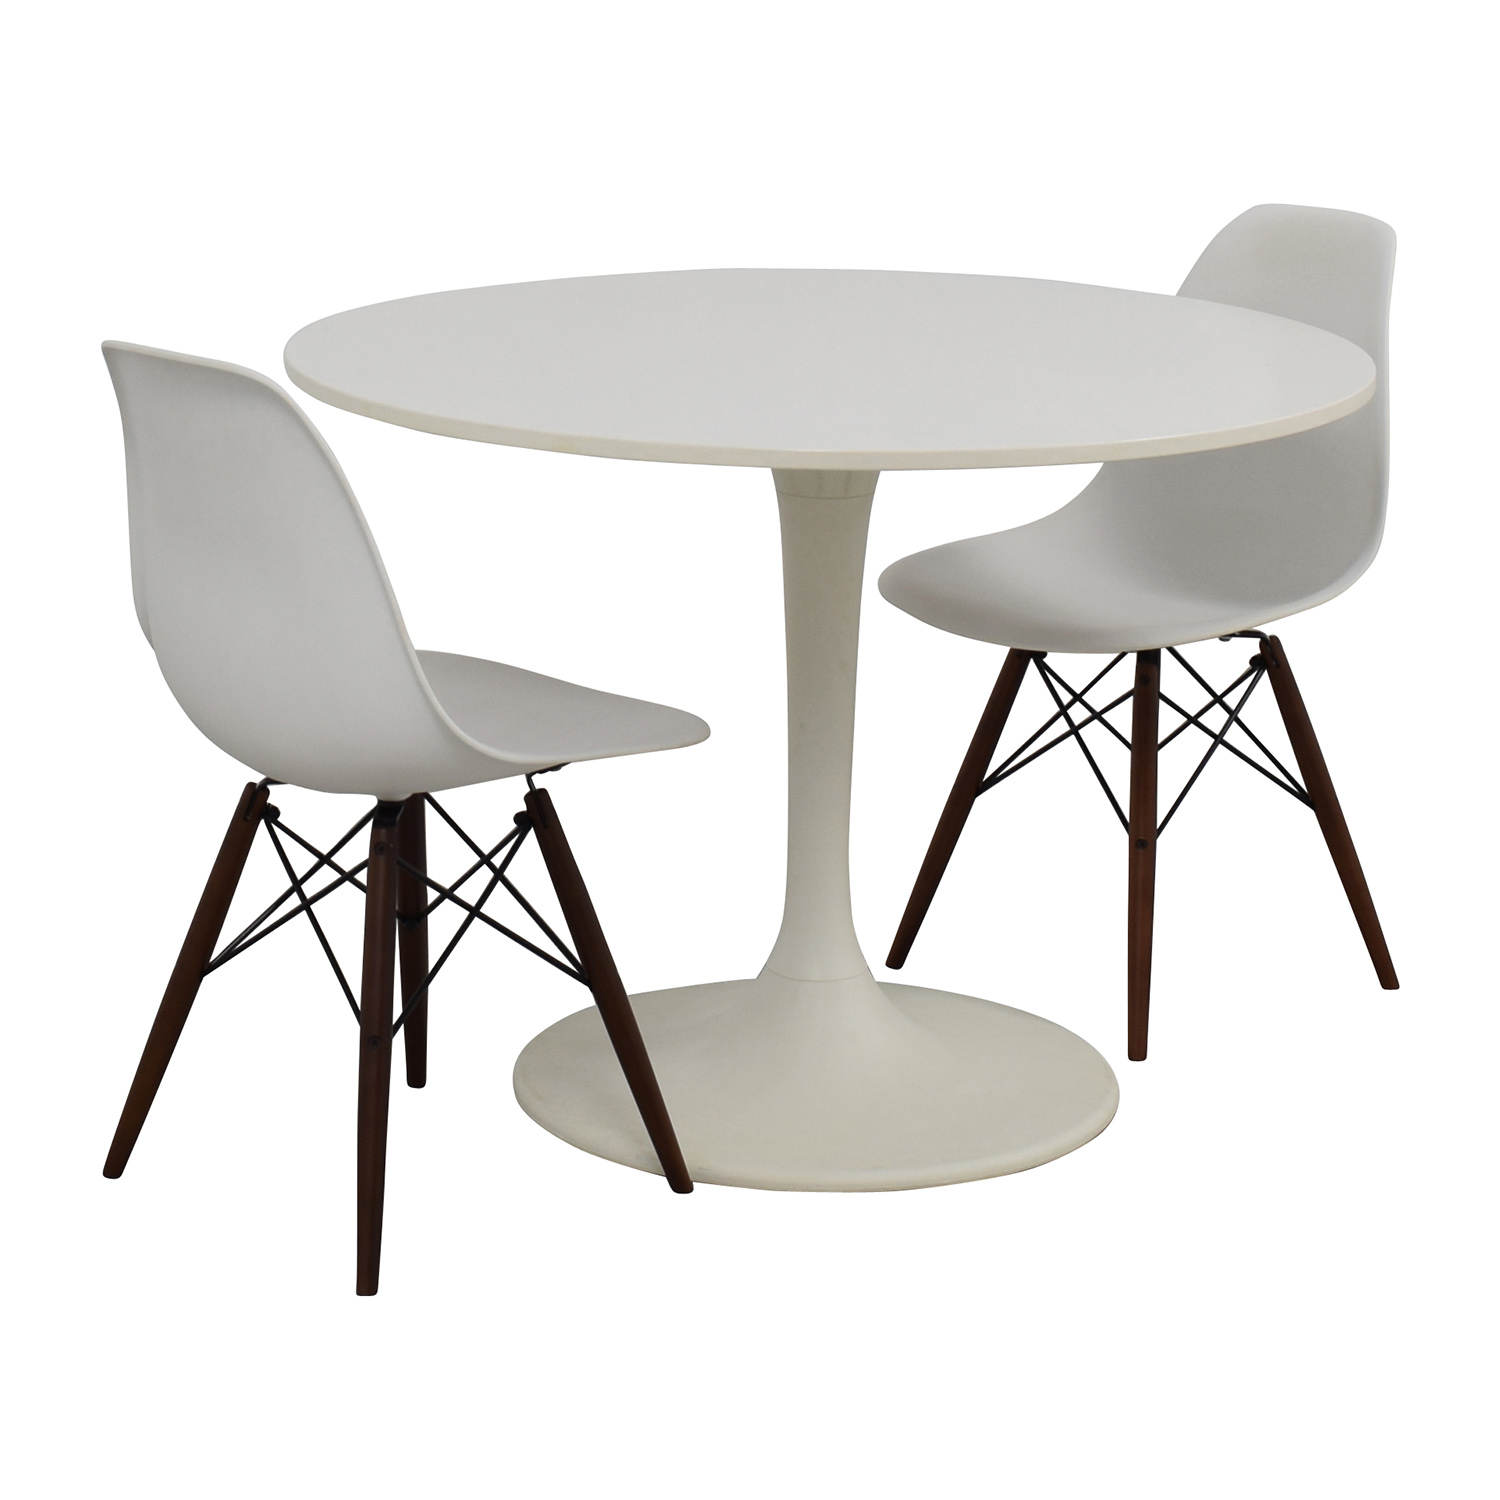 ... Vortex Tulip Table And Vortex Chair Set Used ...